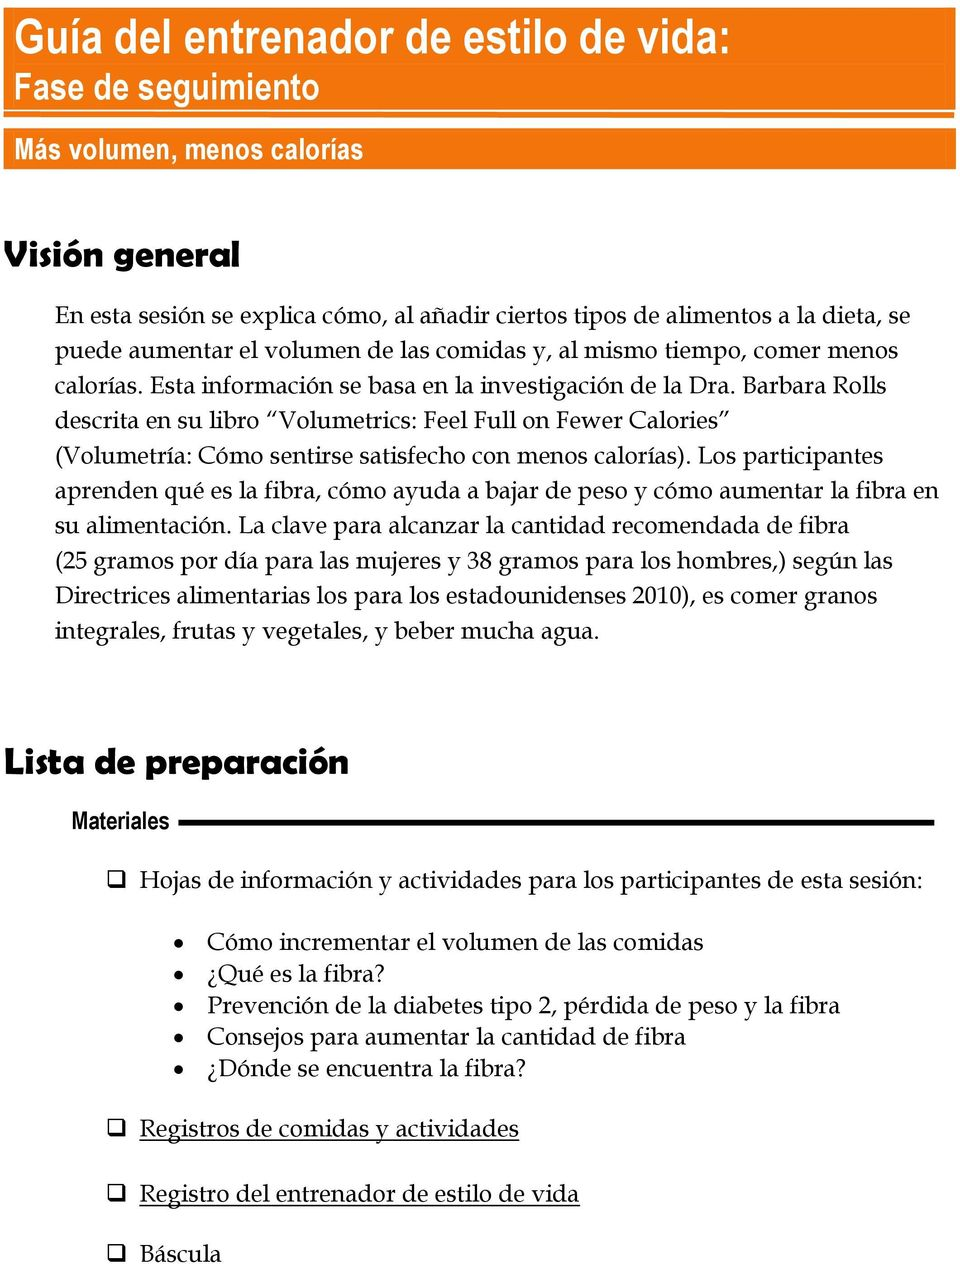 Barbara Rolls descrita en su libro Volumetrics: Feel Full on Fewer Calories (Volumetría: Cómo sentirse satisfecho con menos calorías).